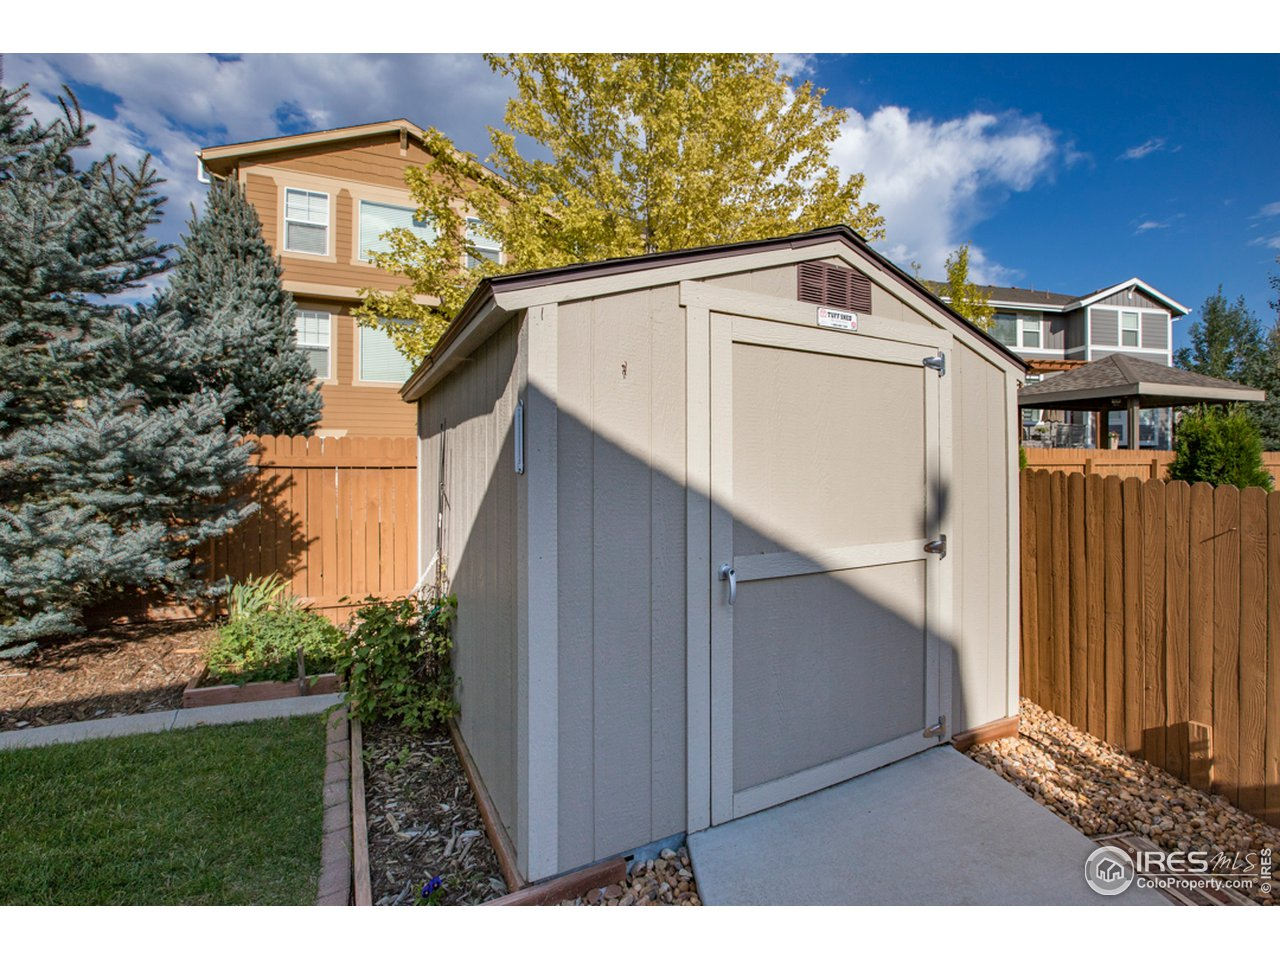 10 x 8 Tuff Shed on a foundation